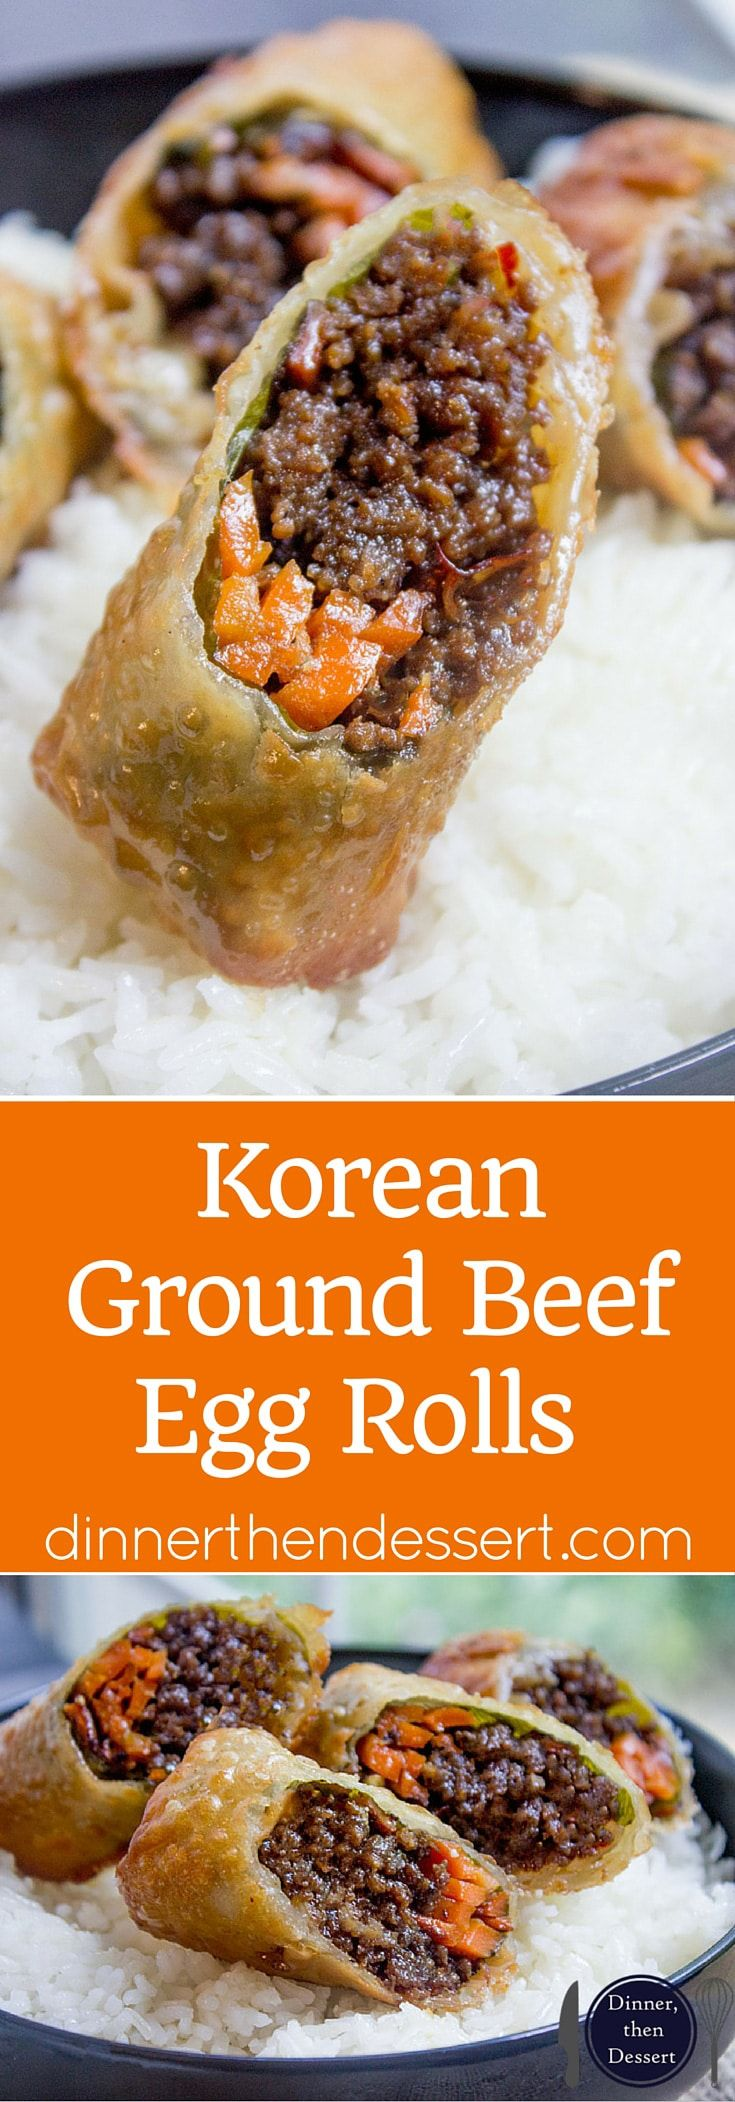 Korean Ground Beef Egg Rolls